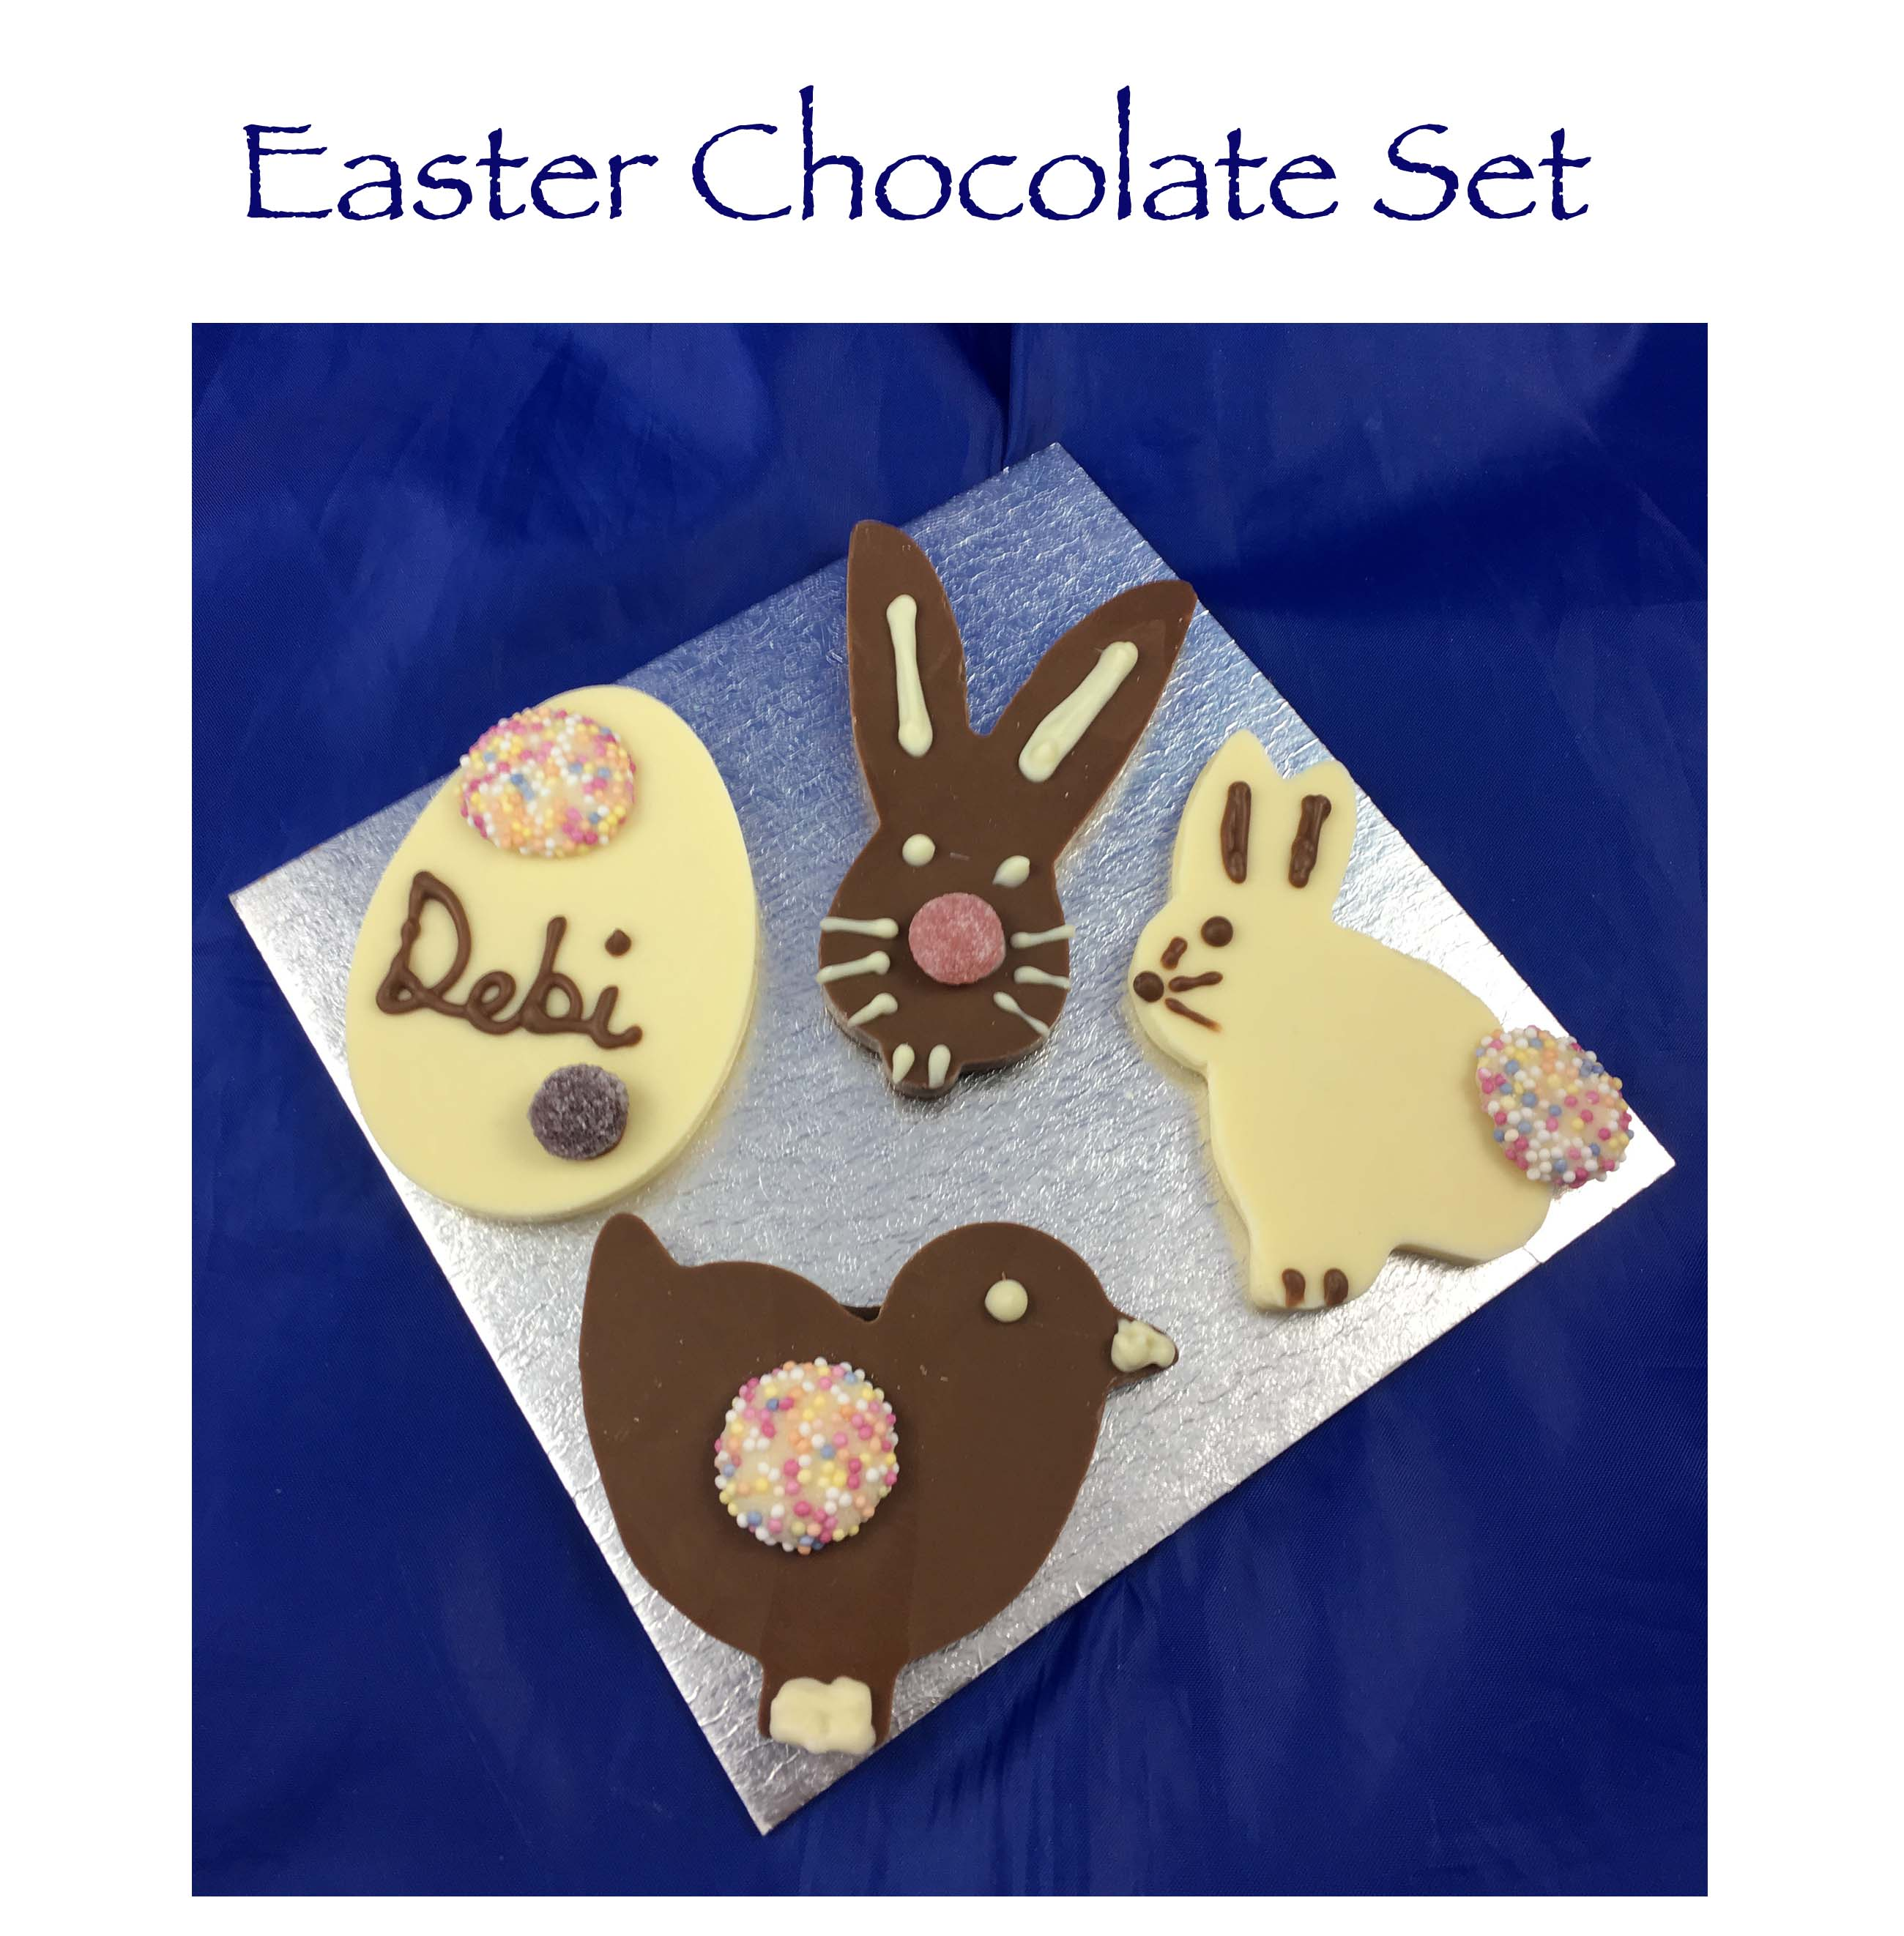 Easter Chocolate Set